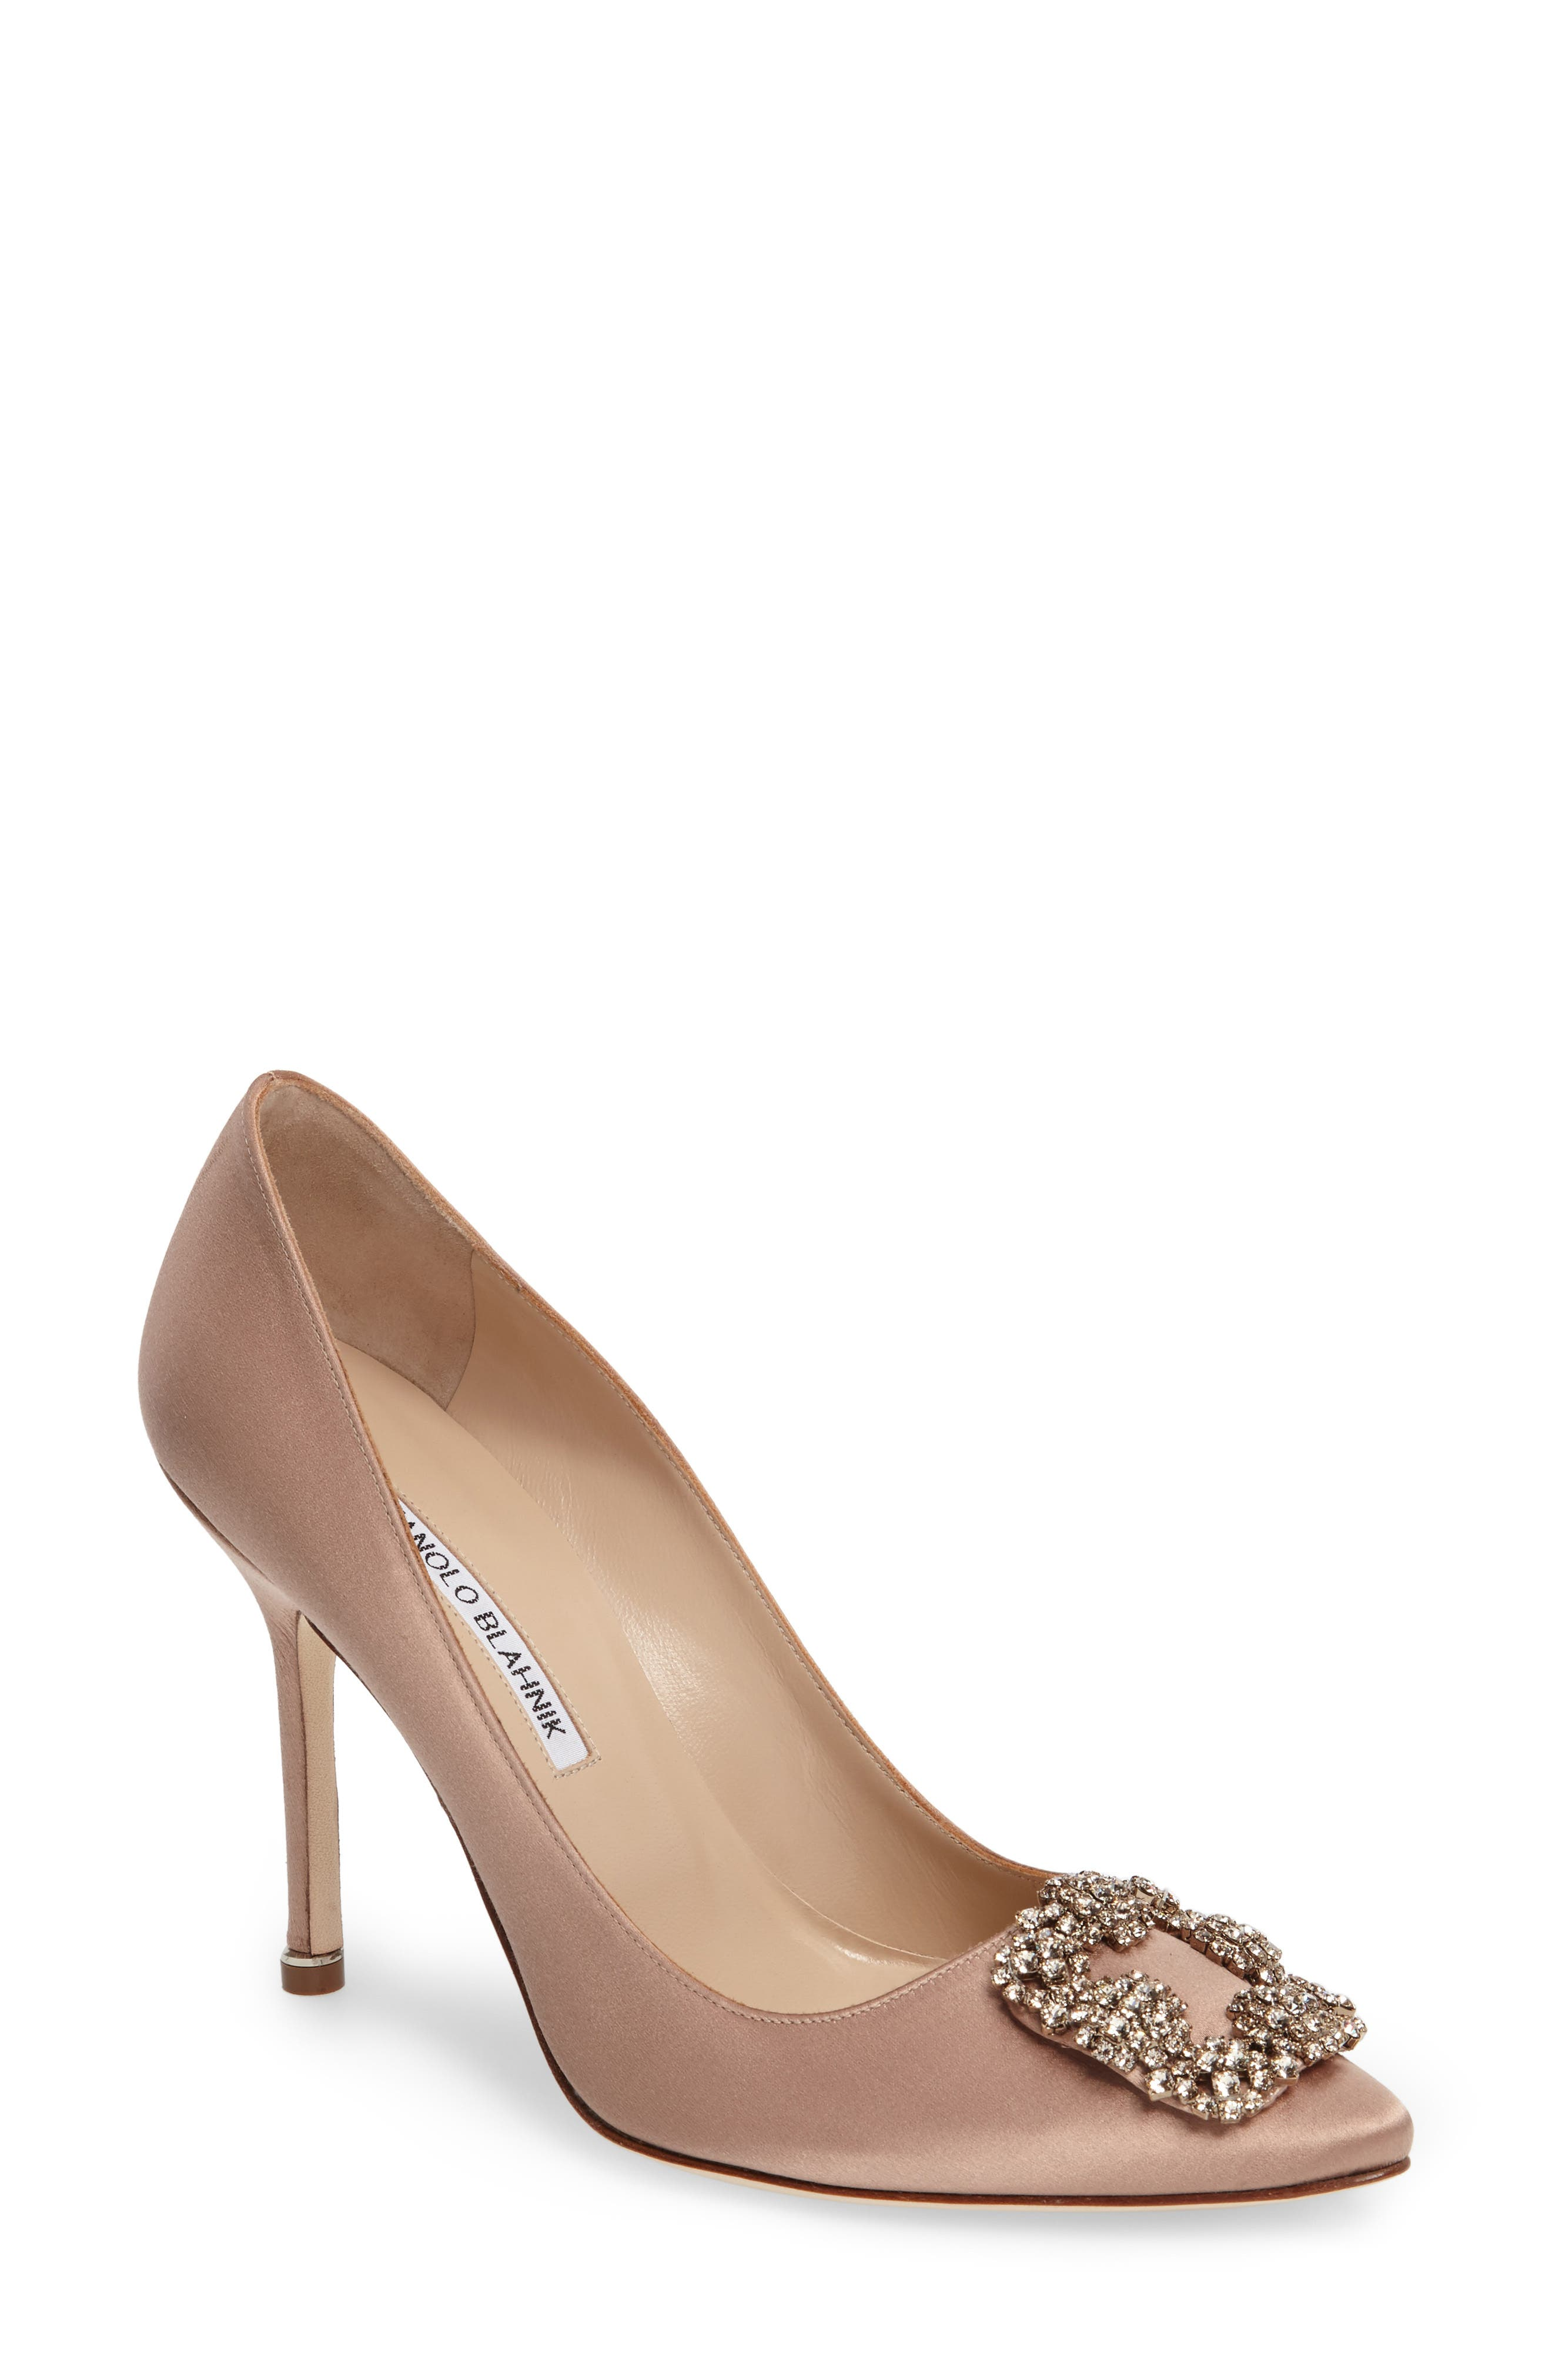 Alternate Image 1 Selected - Manolo Blahnik 'Hangisi' Jewel Pump (Women)